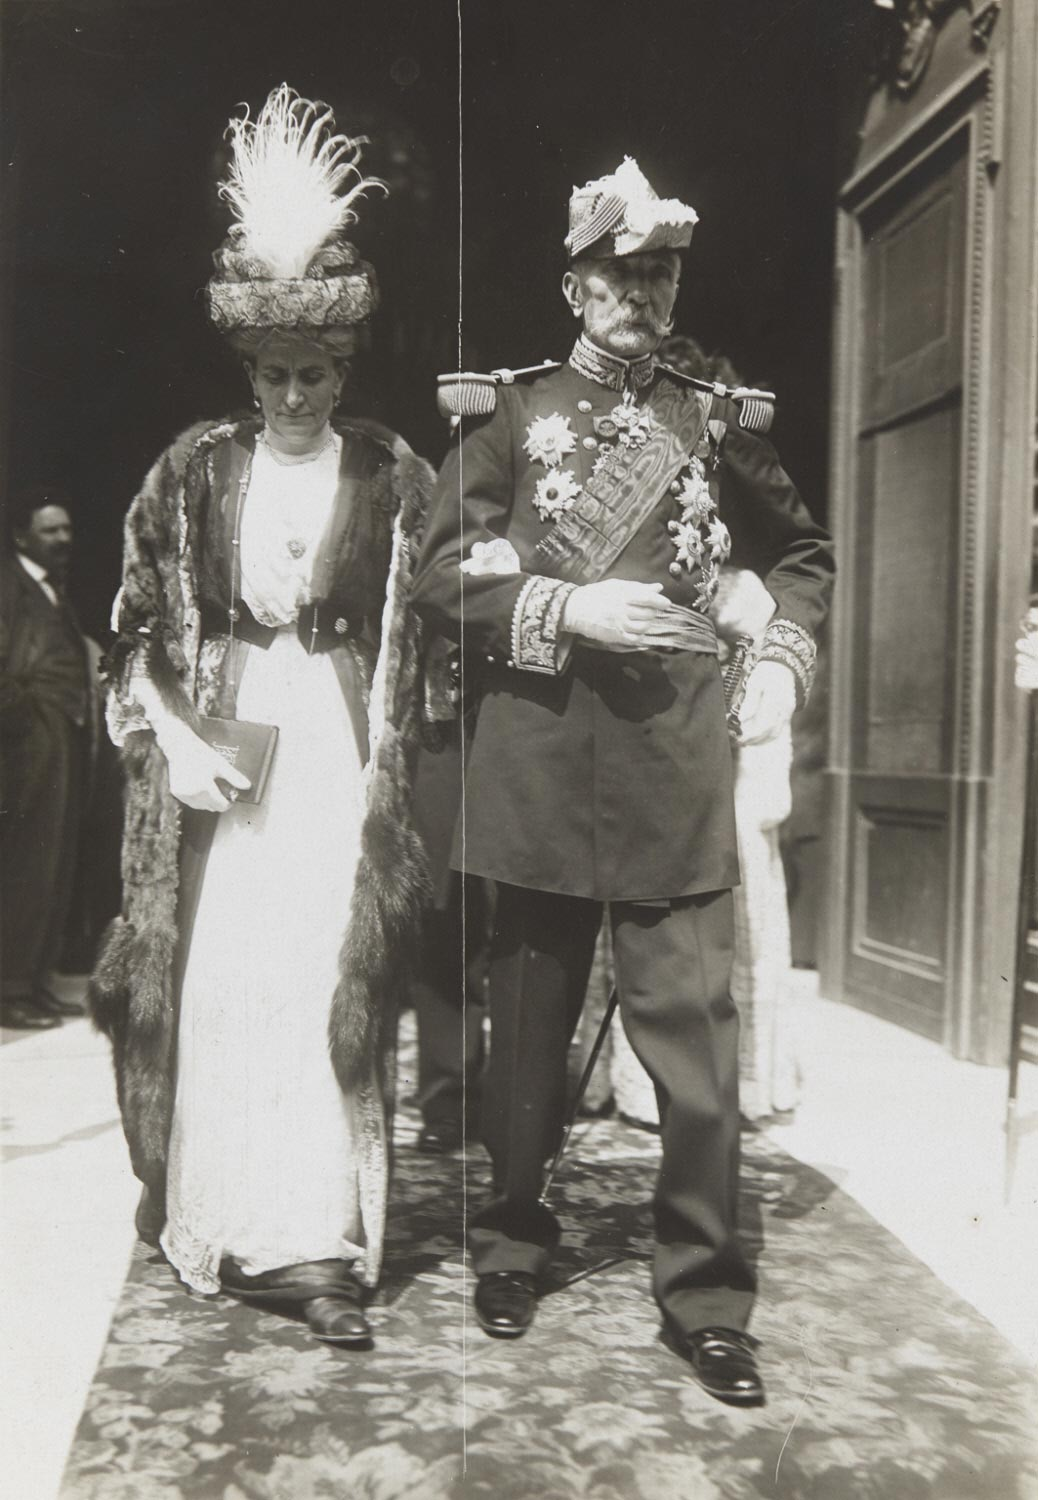 The Wedding of Victor Fernet and Mademoiselle de Boisdeffre